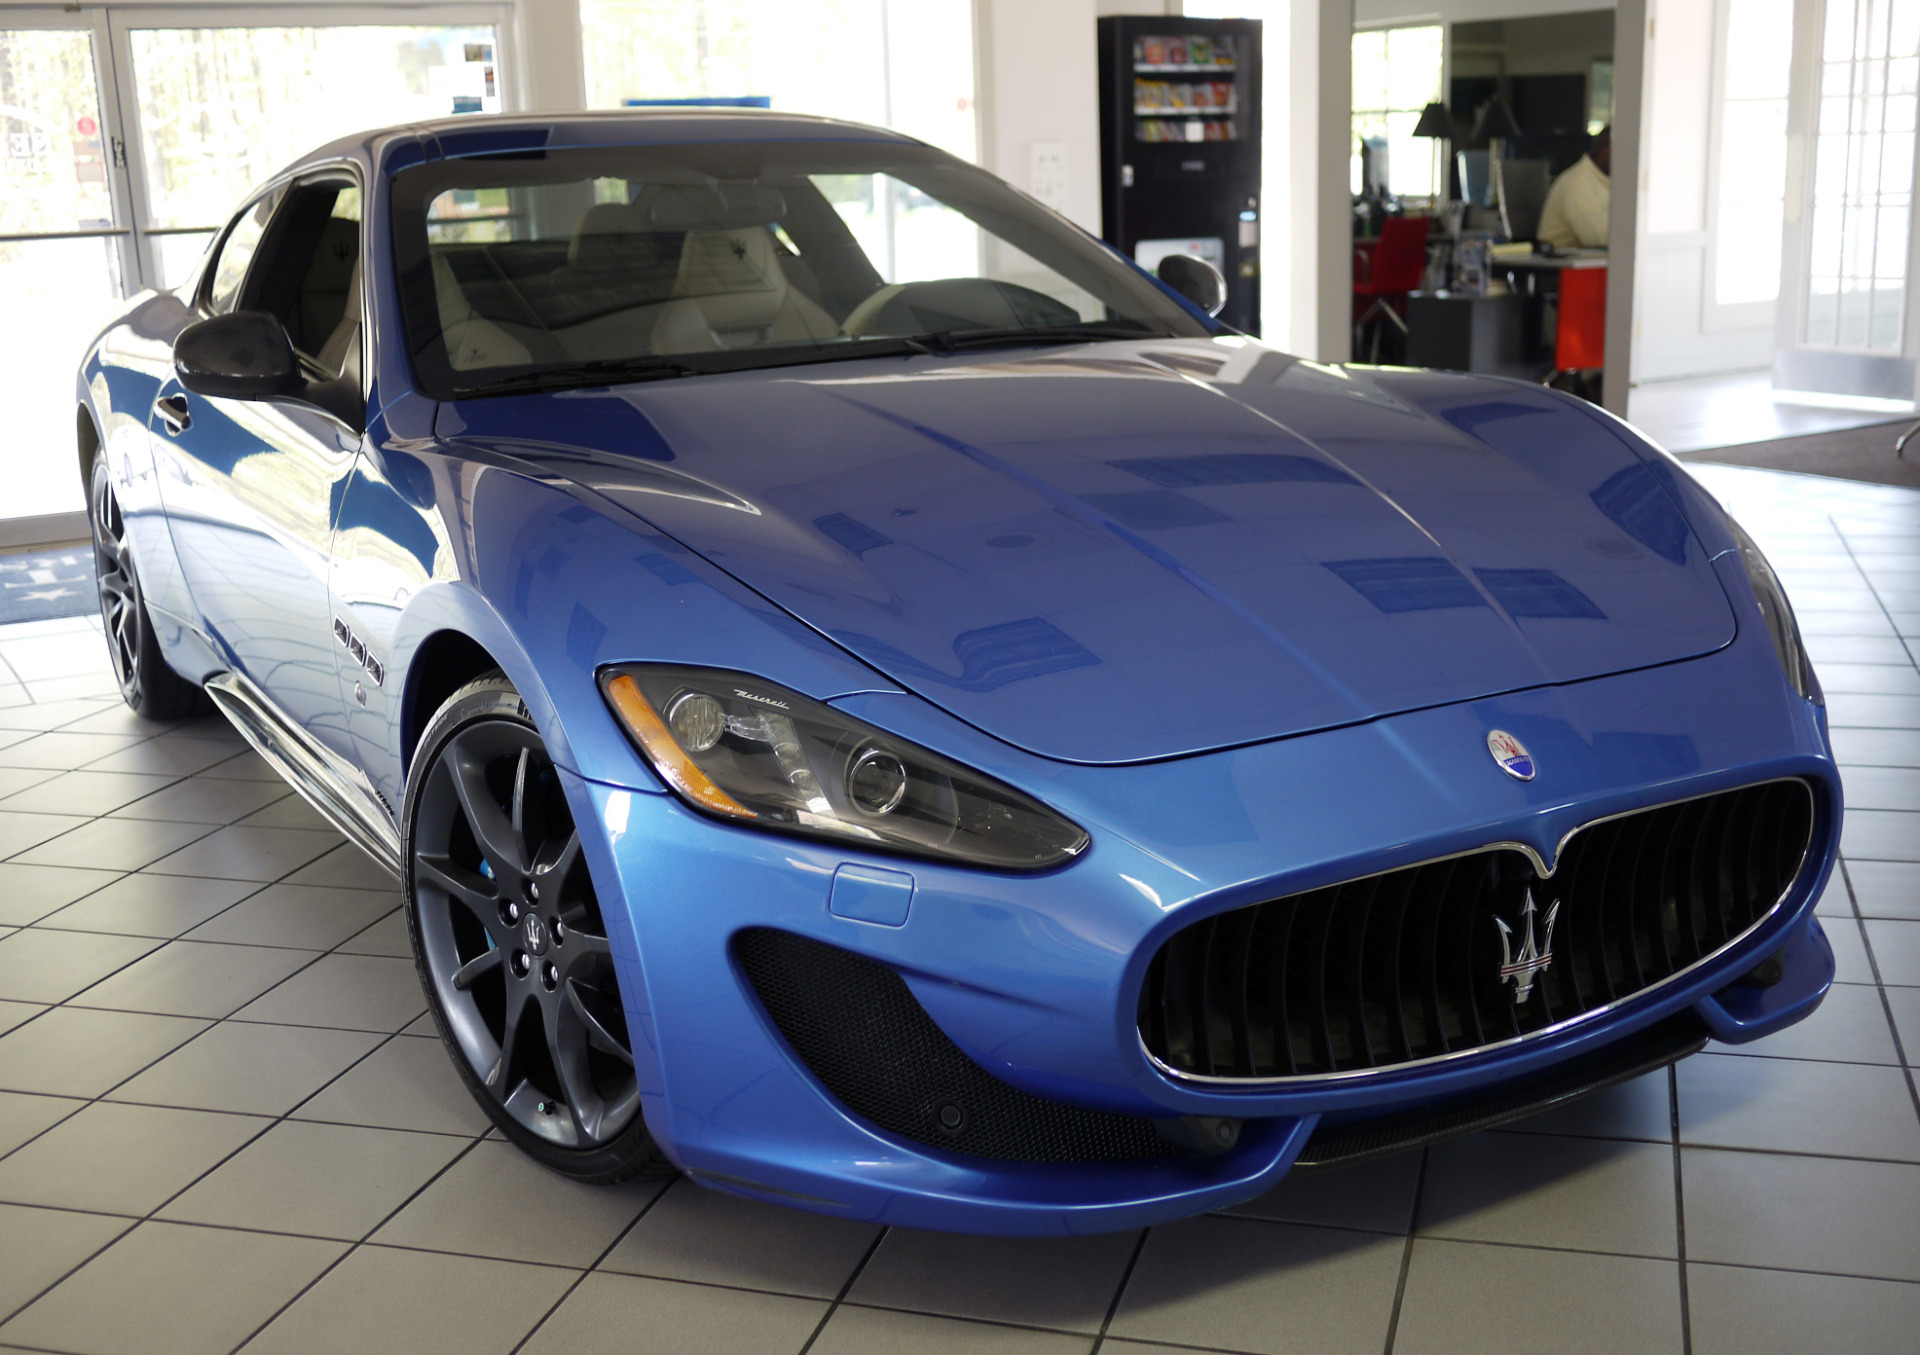 used 2013 maserati granturismo mc marietta ga. Black Bedroom Furniture Sets. Home Design Ideas